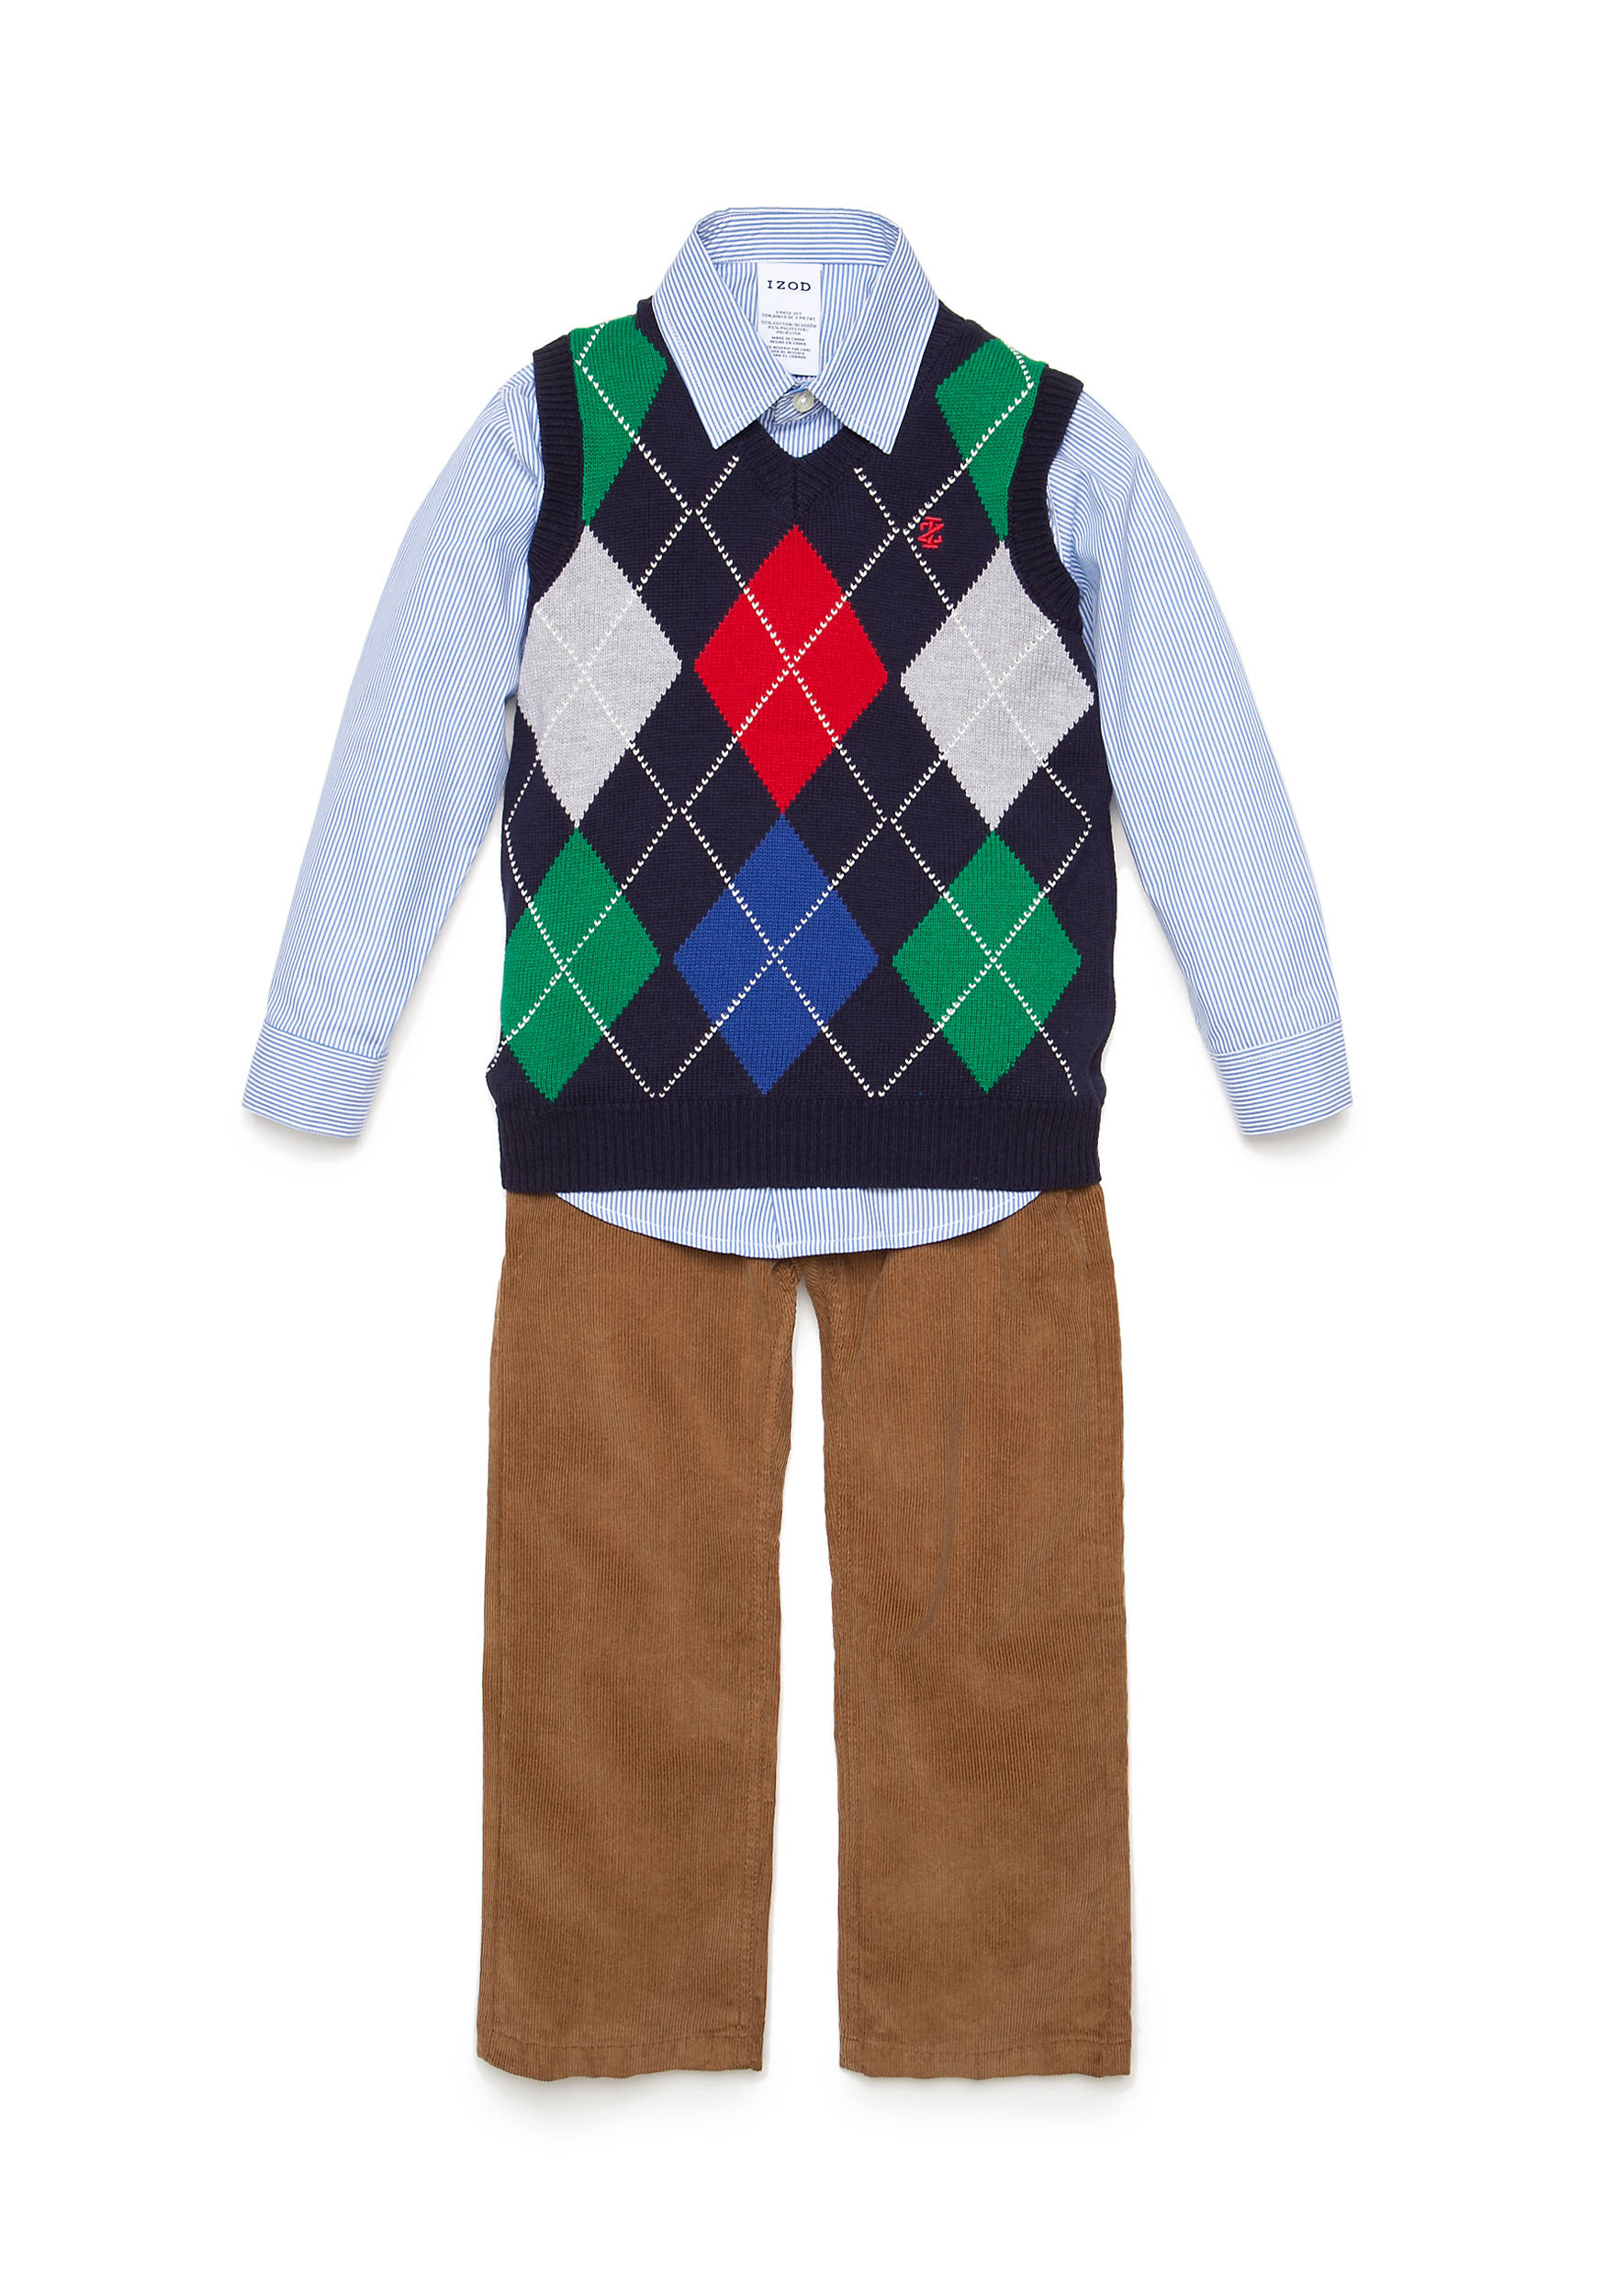 IZOD 3-Piece Argyle Sweater Vest, Striped Woven Shirt and Corduroy ...